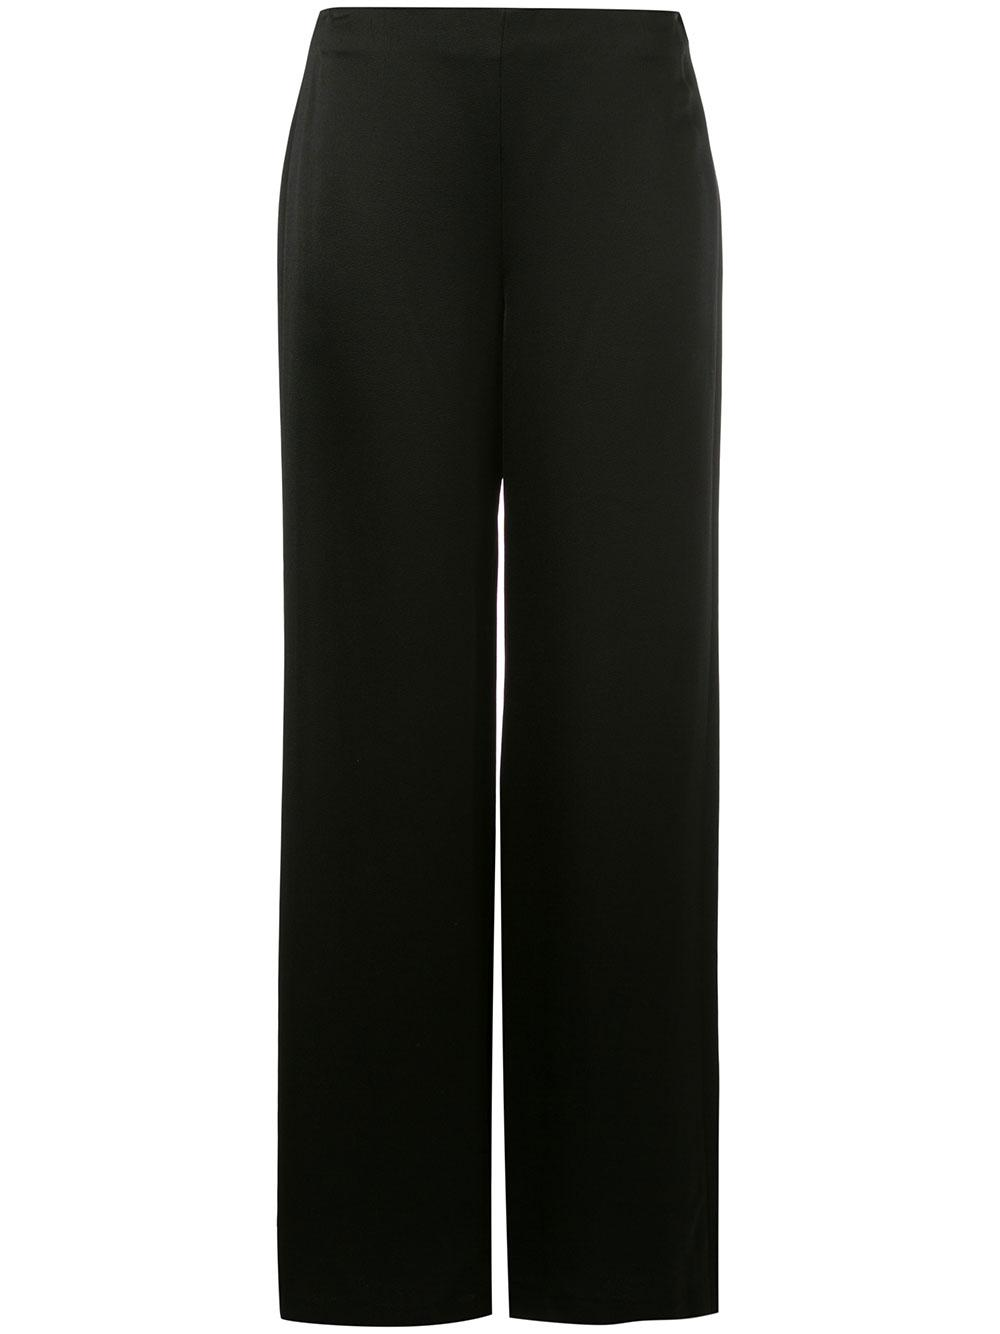 Satin Clean Wide Leg Pant